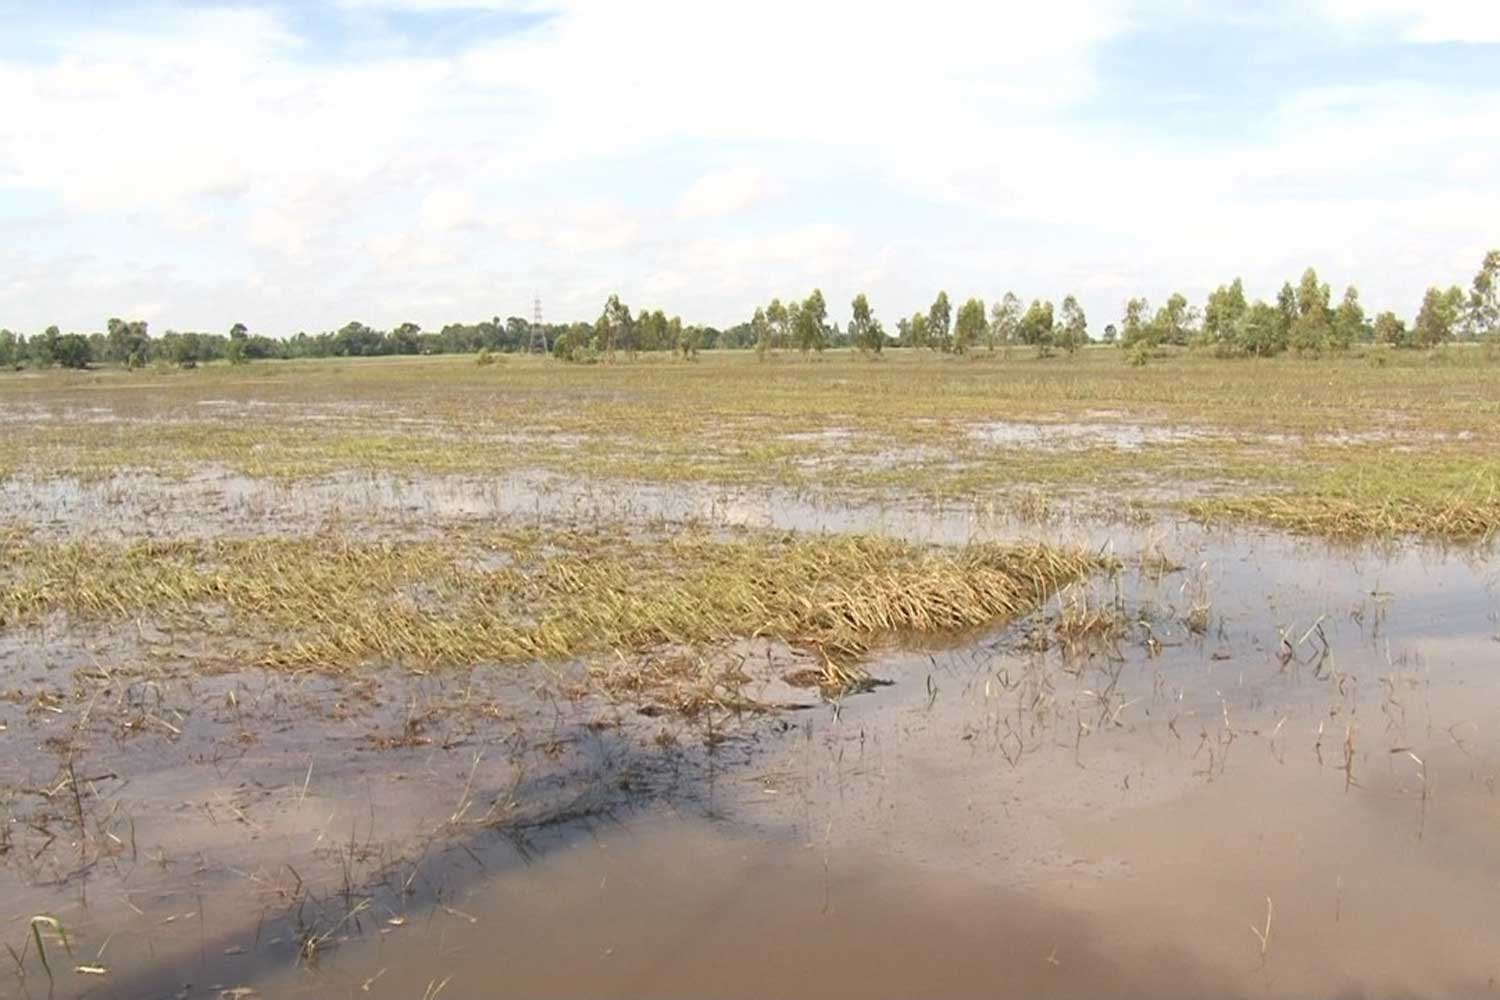 Many rice fields in Kalasin province are still under water, although water levels in the province are receding steadily. Flooding in this northeastern province has caused severe damage to farmland and livestock. (Photo by Yongyuth Phuphuangpet)